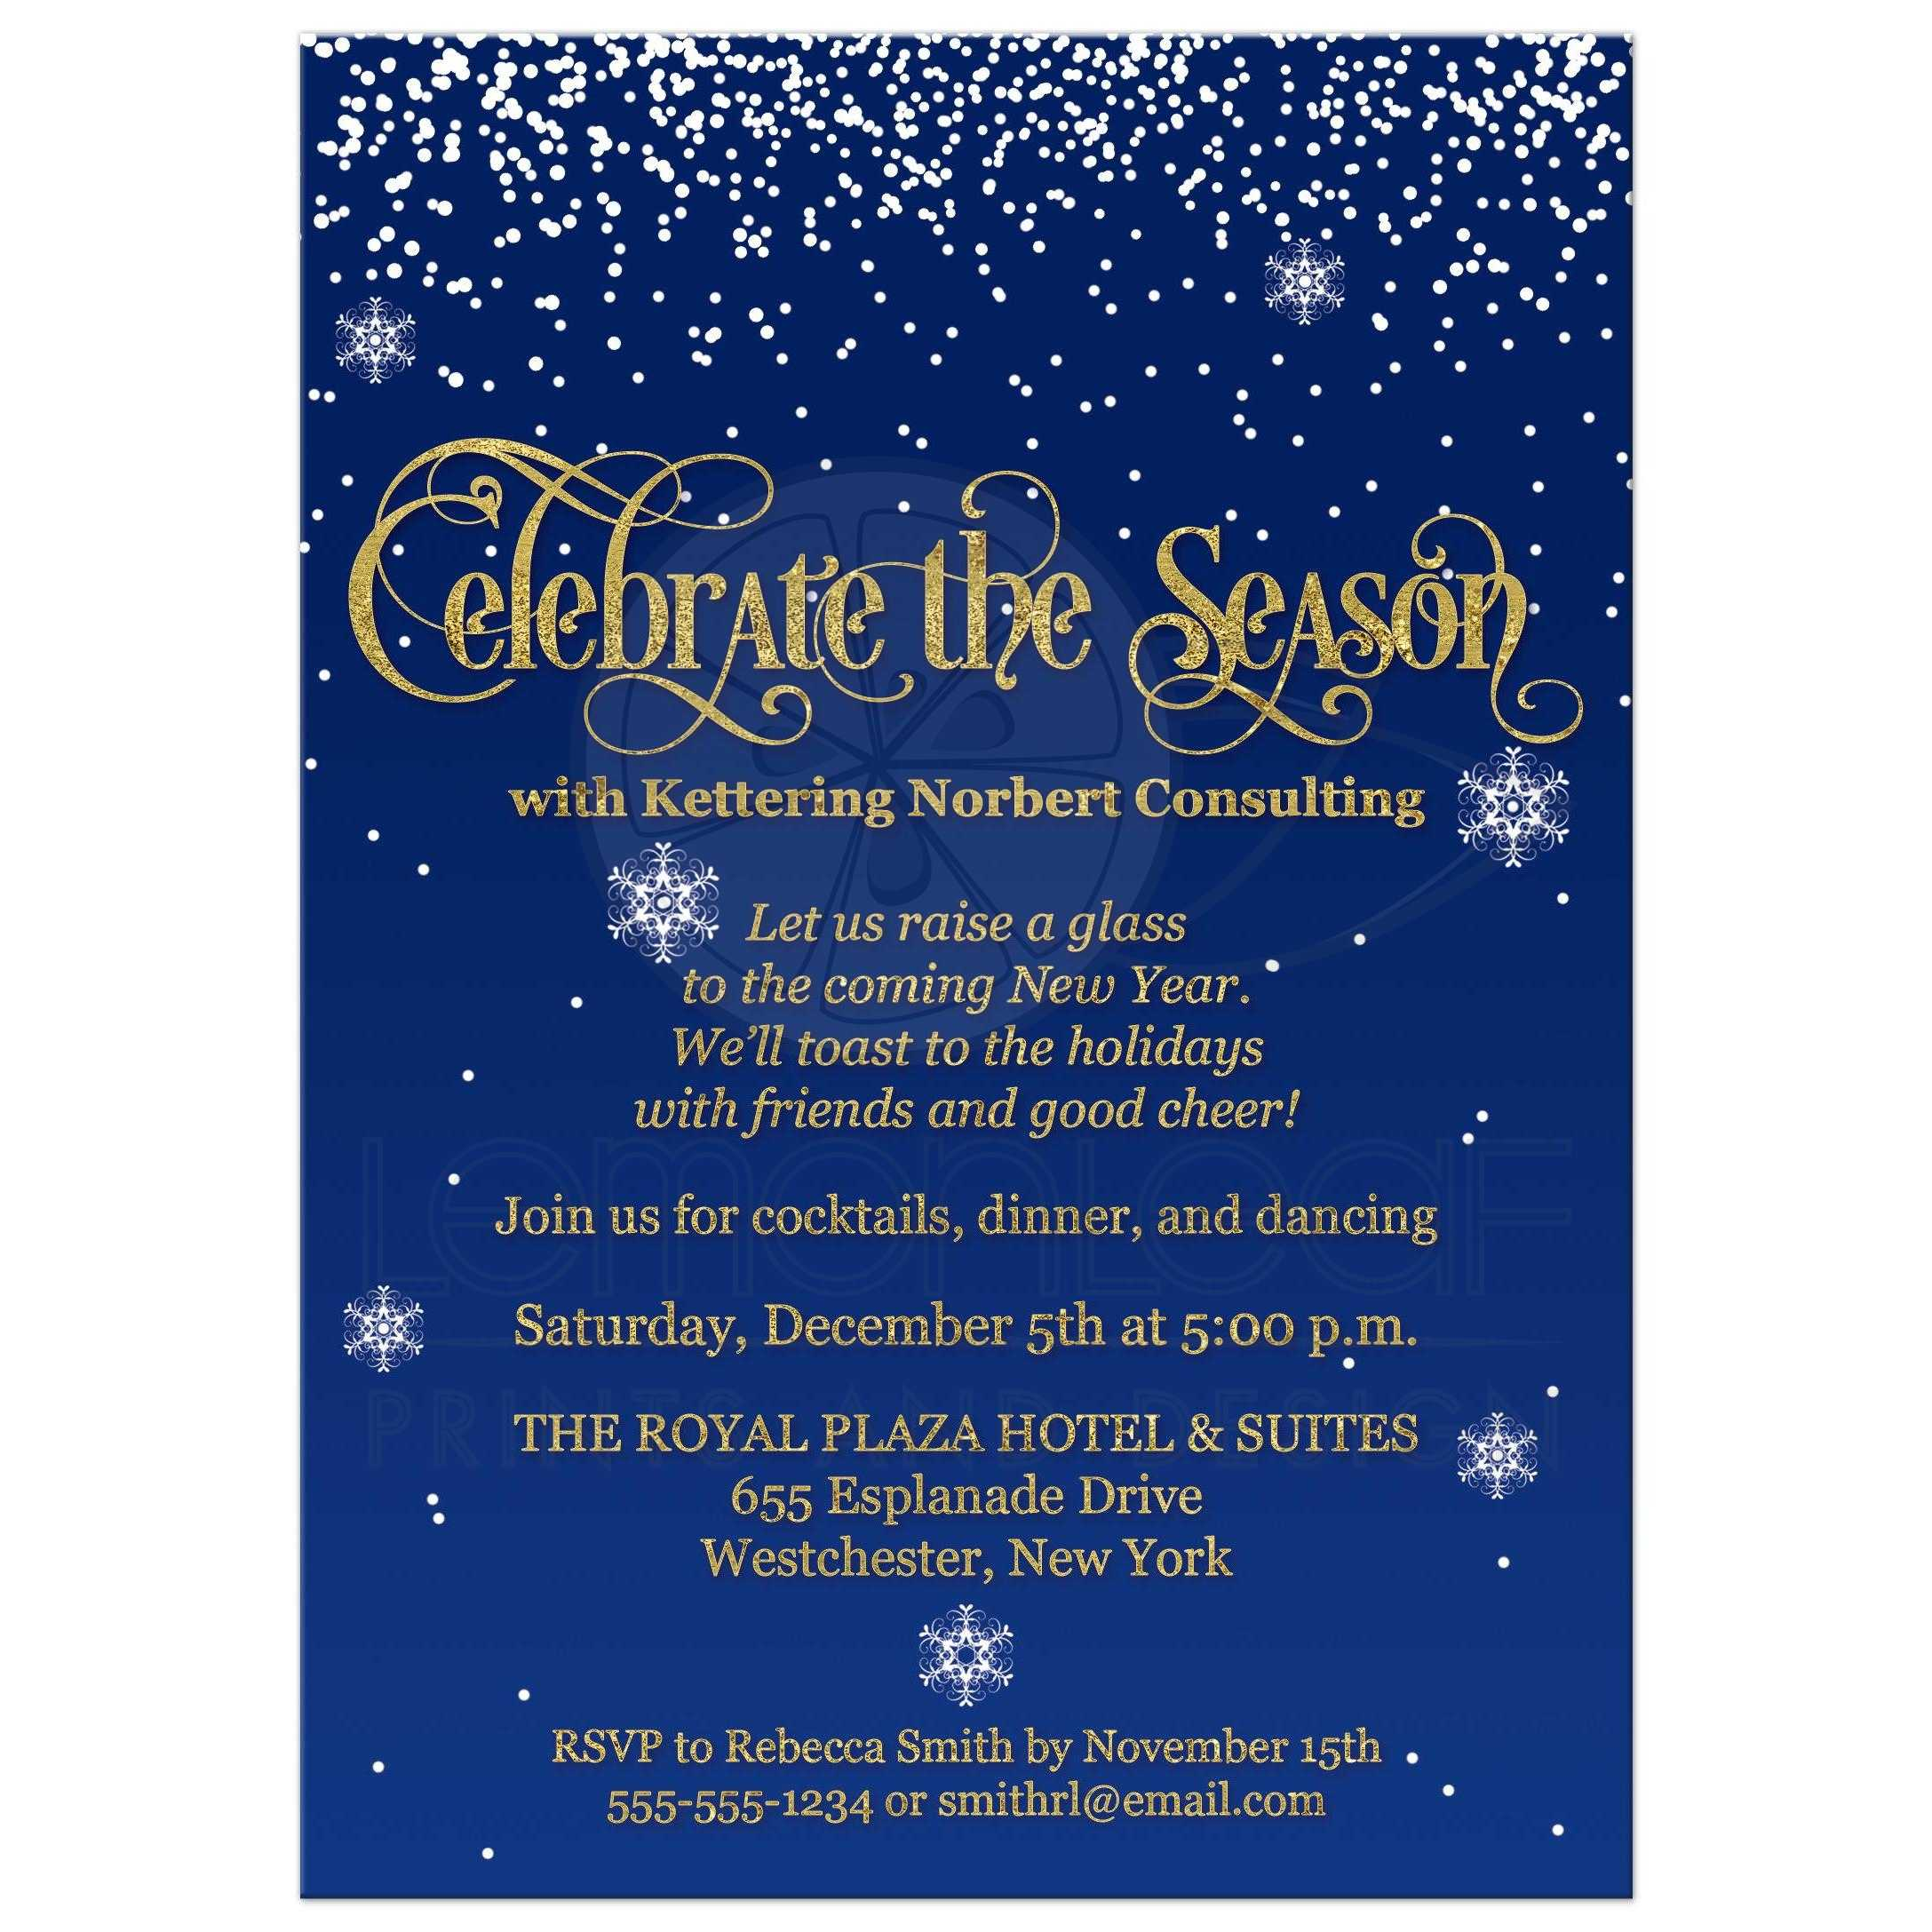 Corporate or business holiday party invitation designs